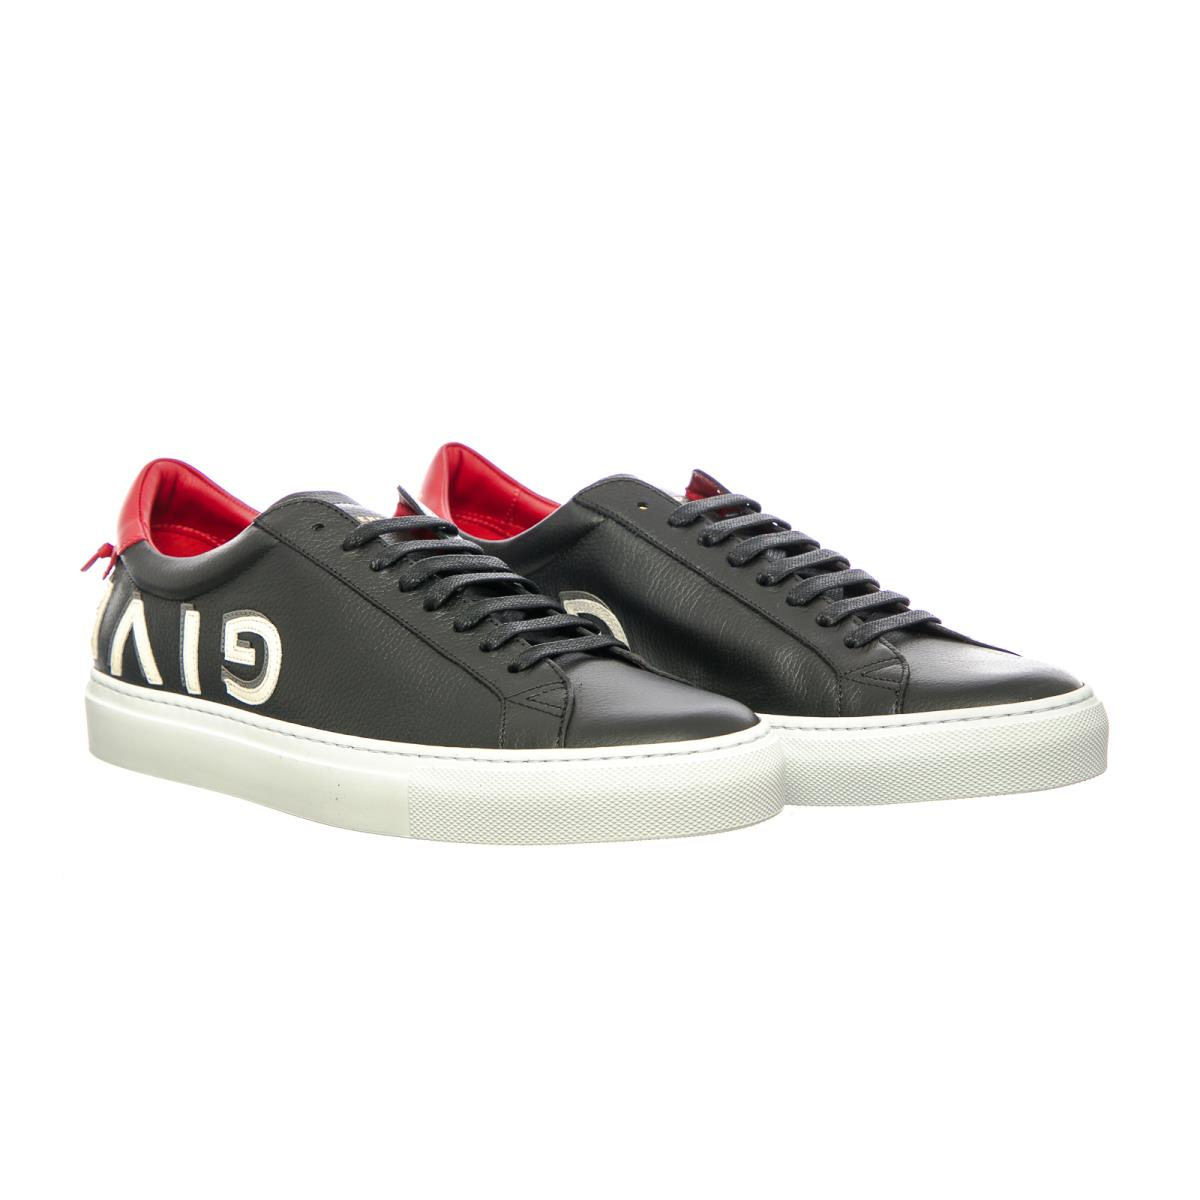 Givenchy Jole Giv Low Scarpe Boutique Urban Street 6q6rw 4bf58d0abc9